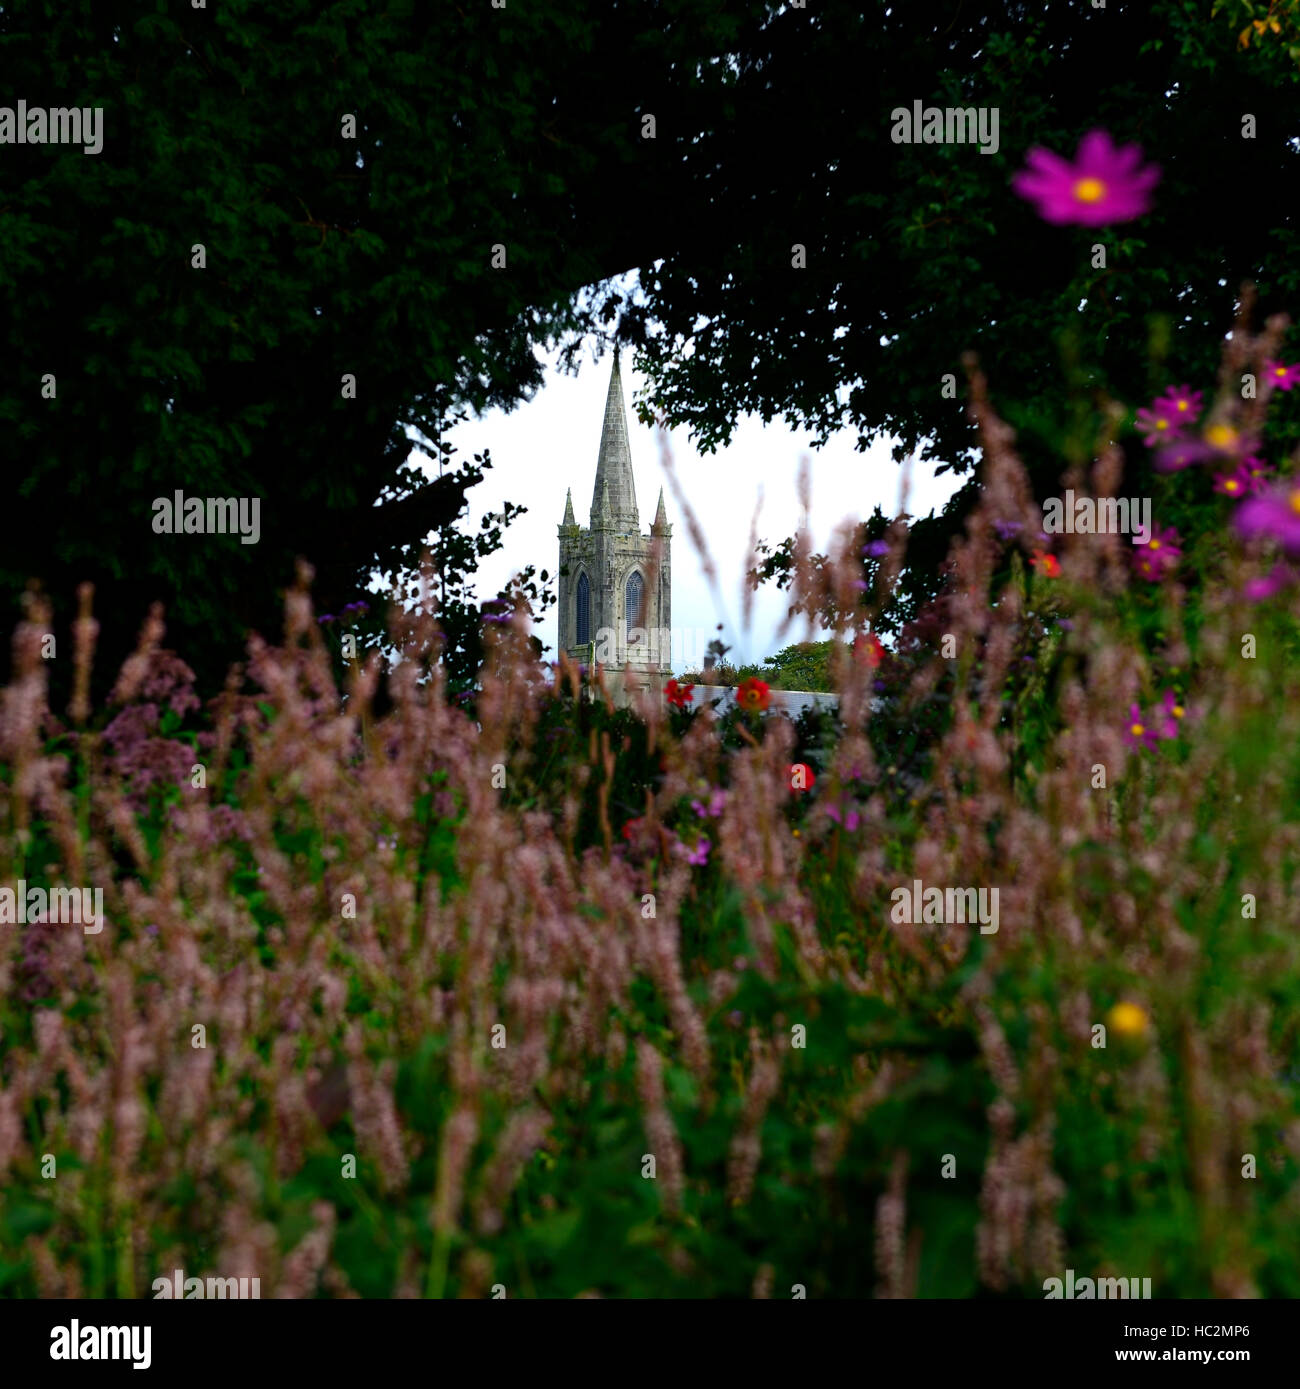 kiltegan church view viewpoint Patthana gardens wicklow ireland attractive display bench seat garden RM Floral Kiltegan - Stock Image